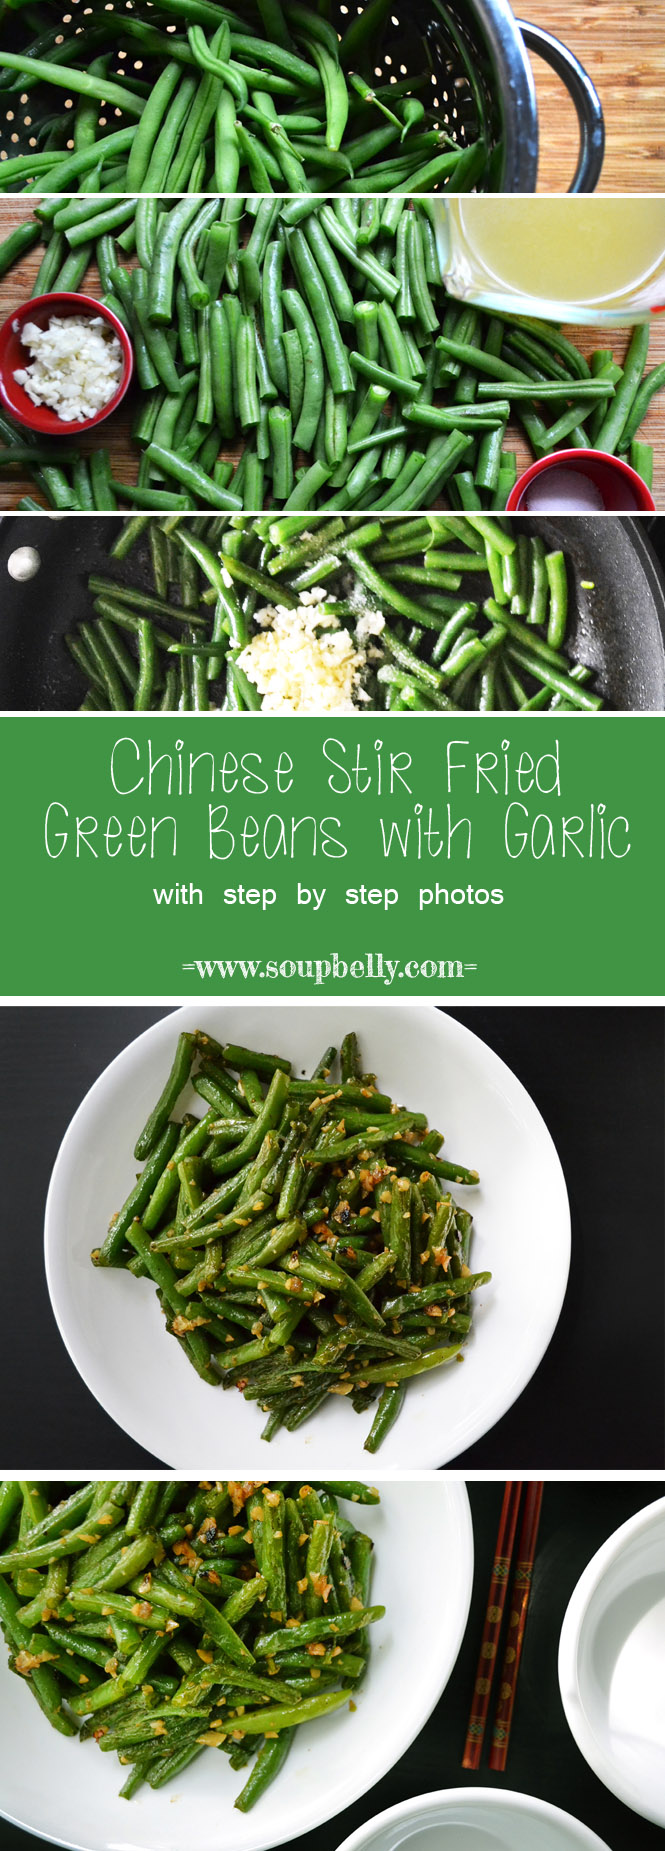 Chinese Stir Fried Green Beans Soupbelly